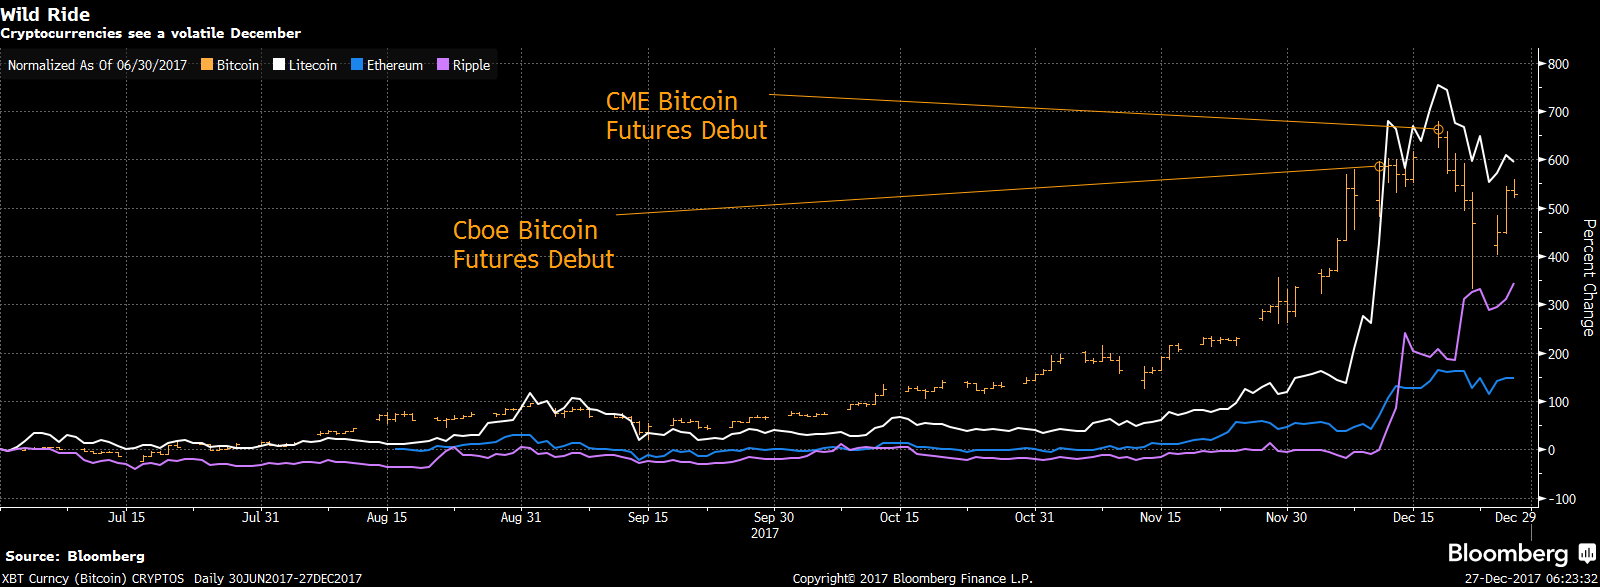 Ripple has been hot. Source: Bloomberg